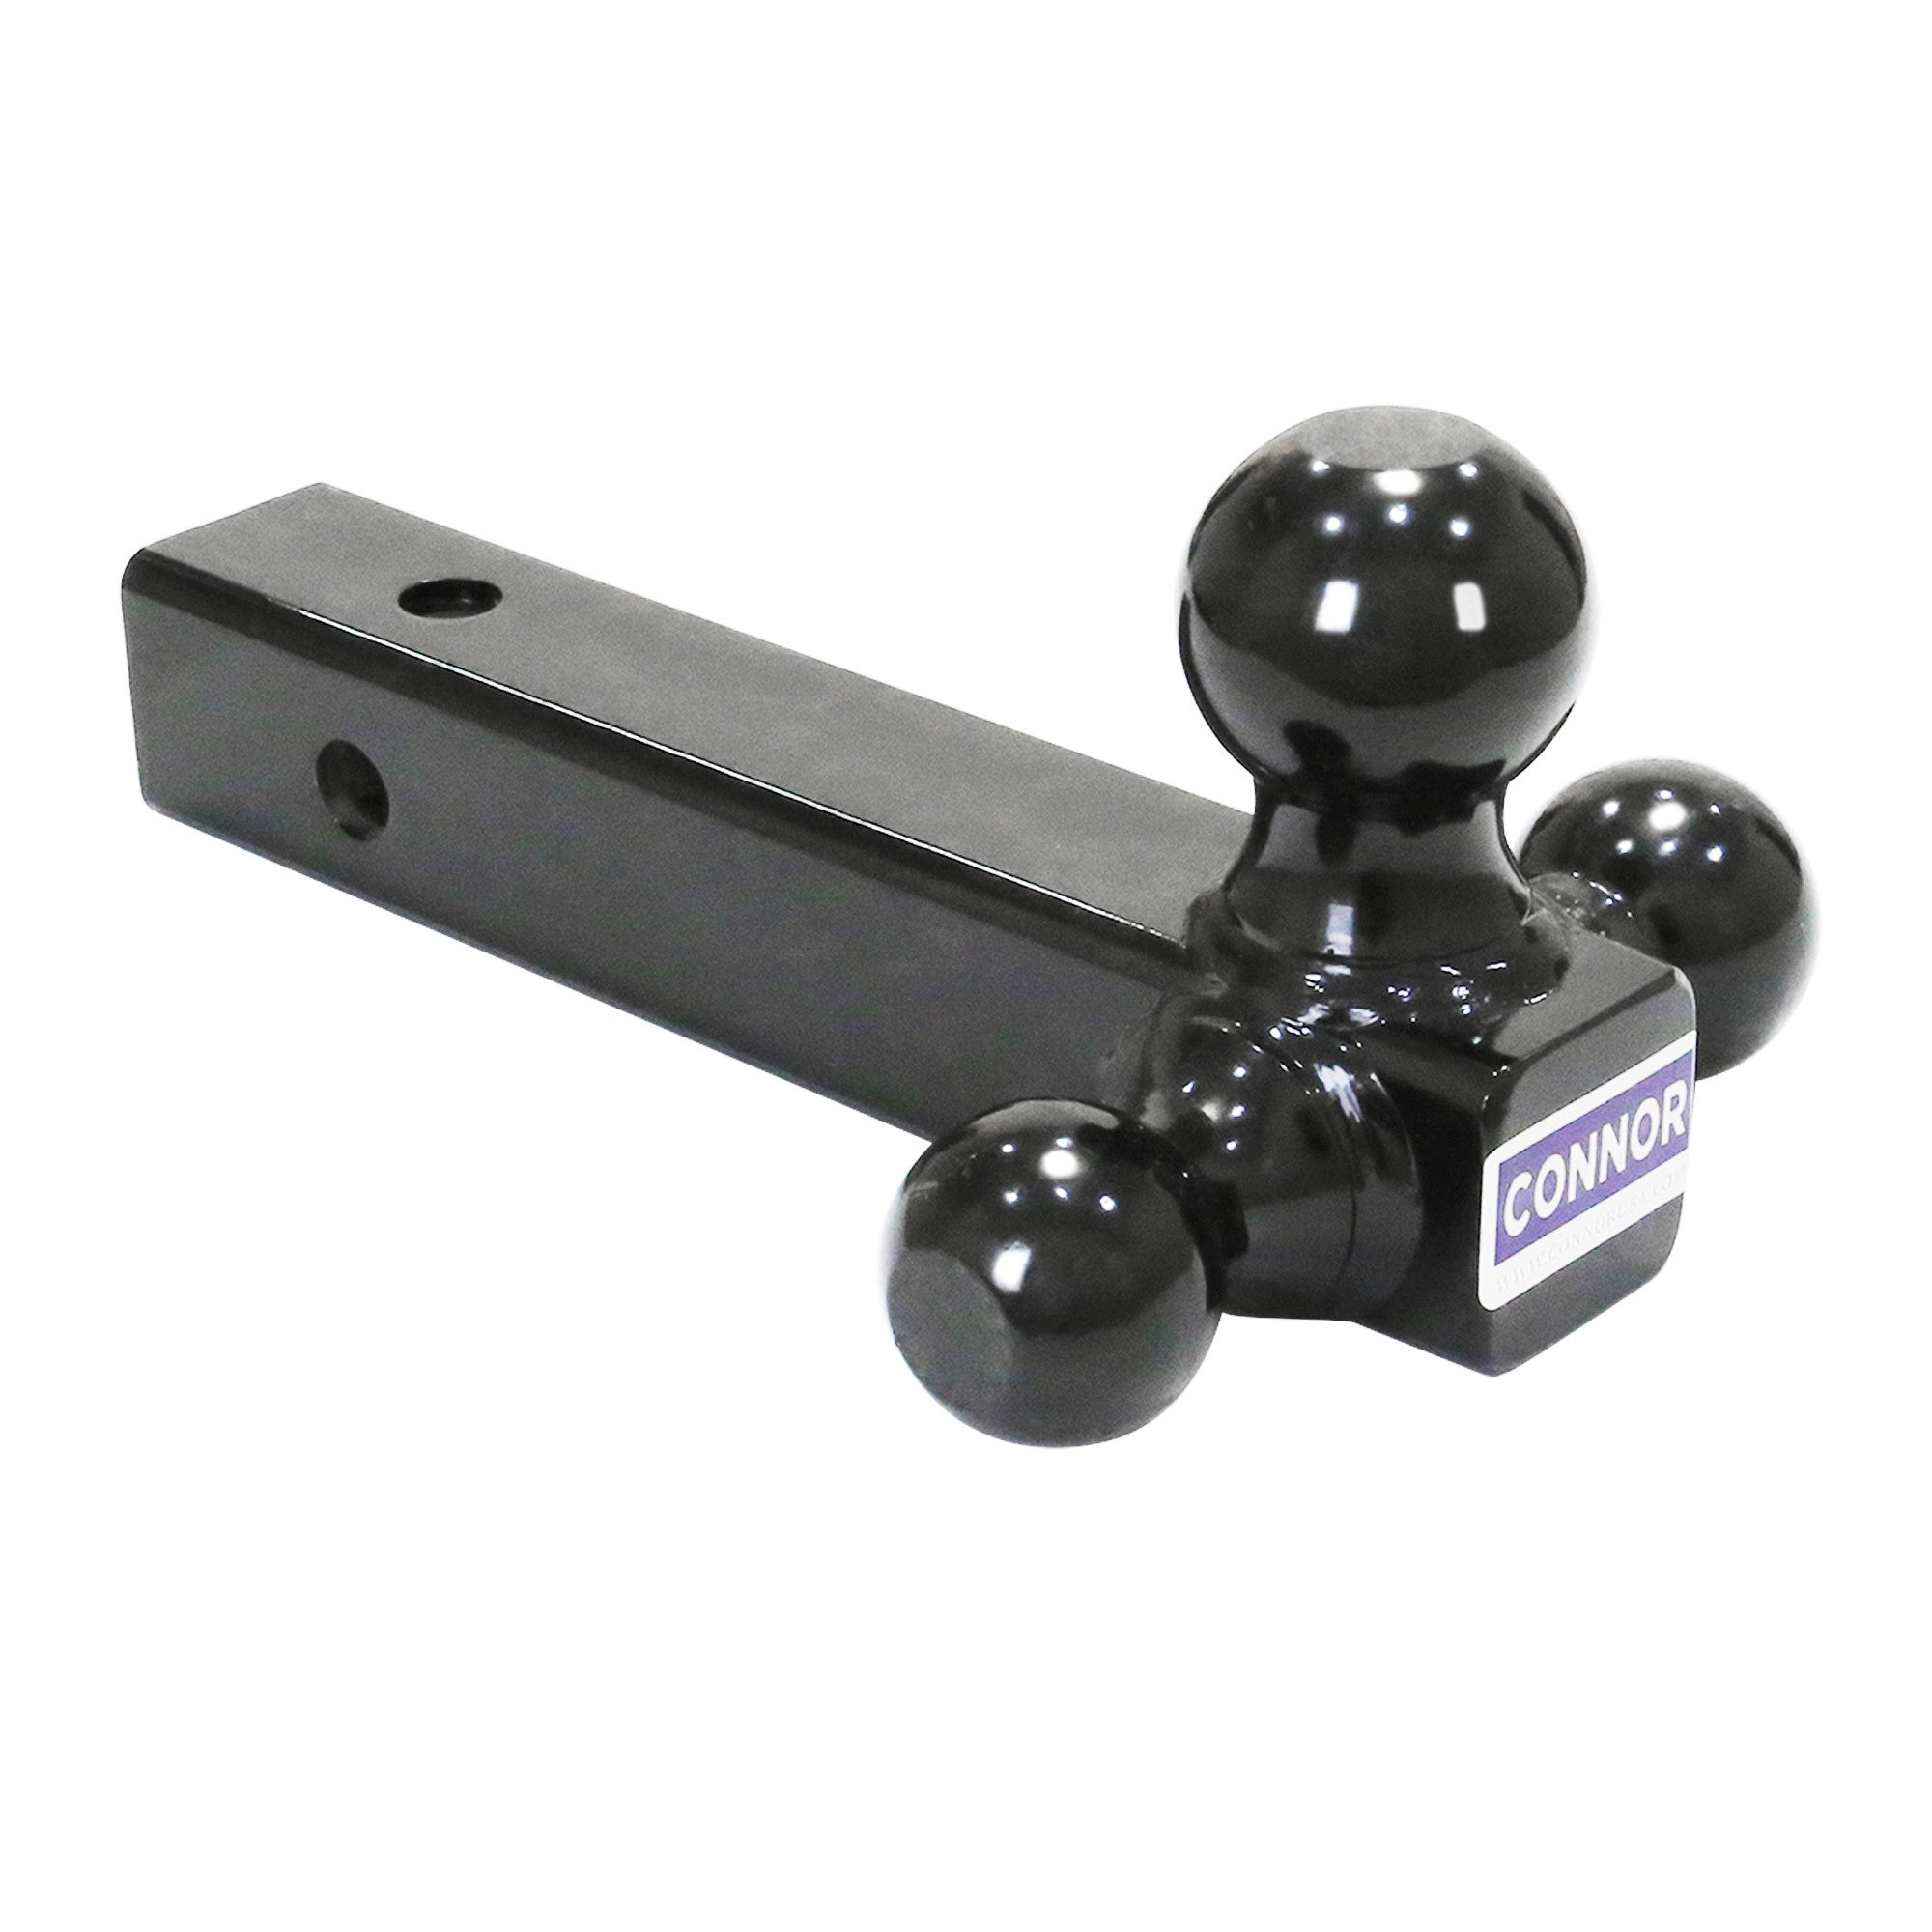 Connor Tri-Ball Mount